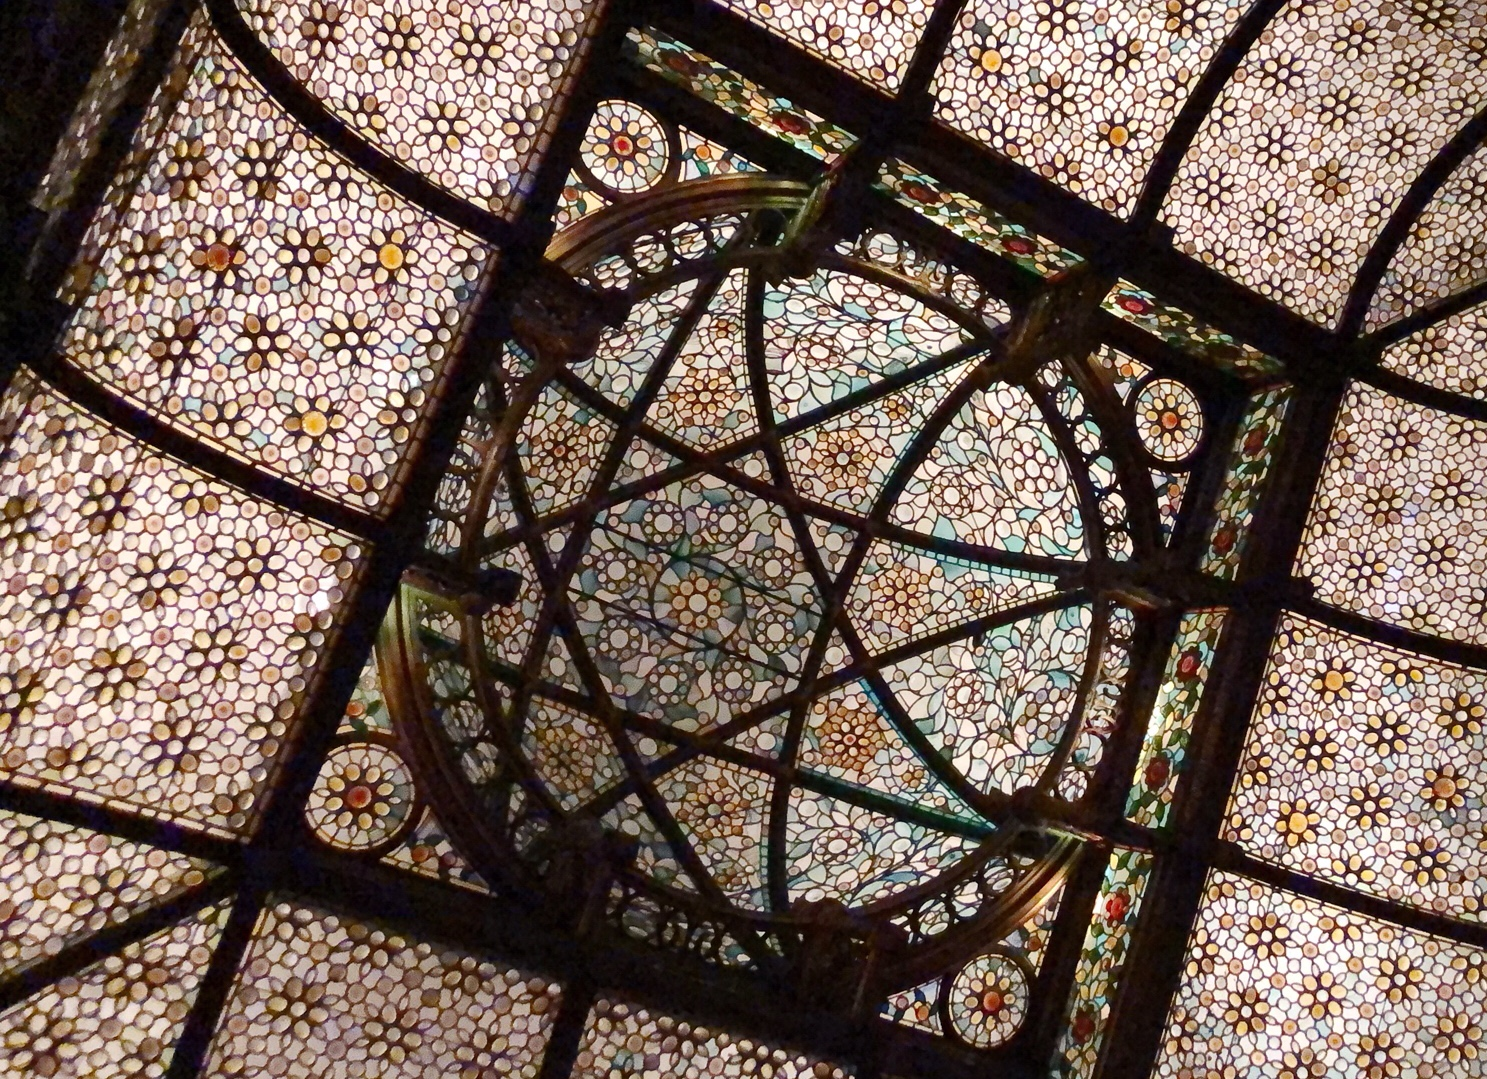 Ceiling of the National Arts Club. Image Credit: YPA